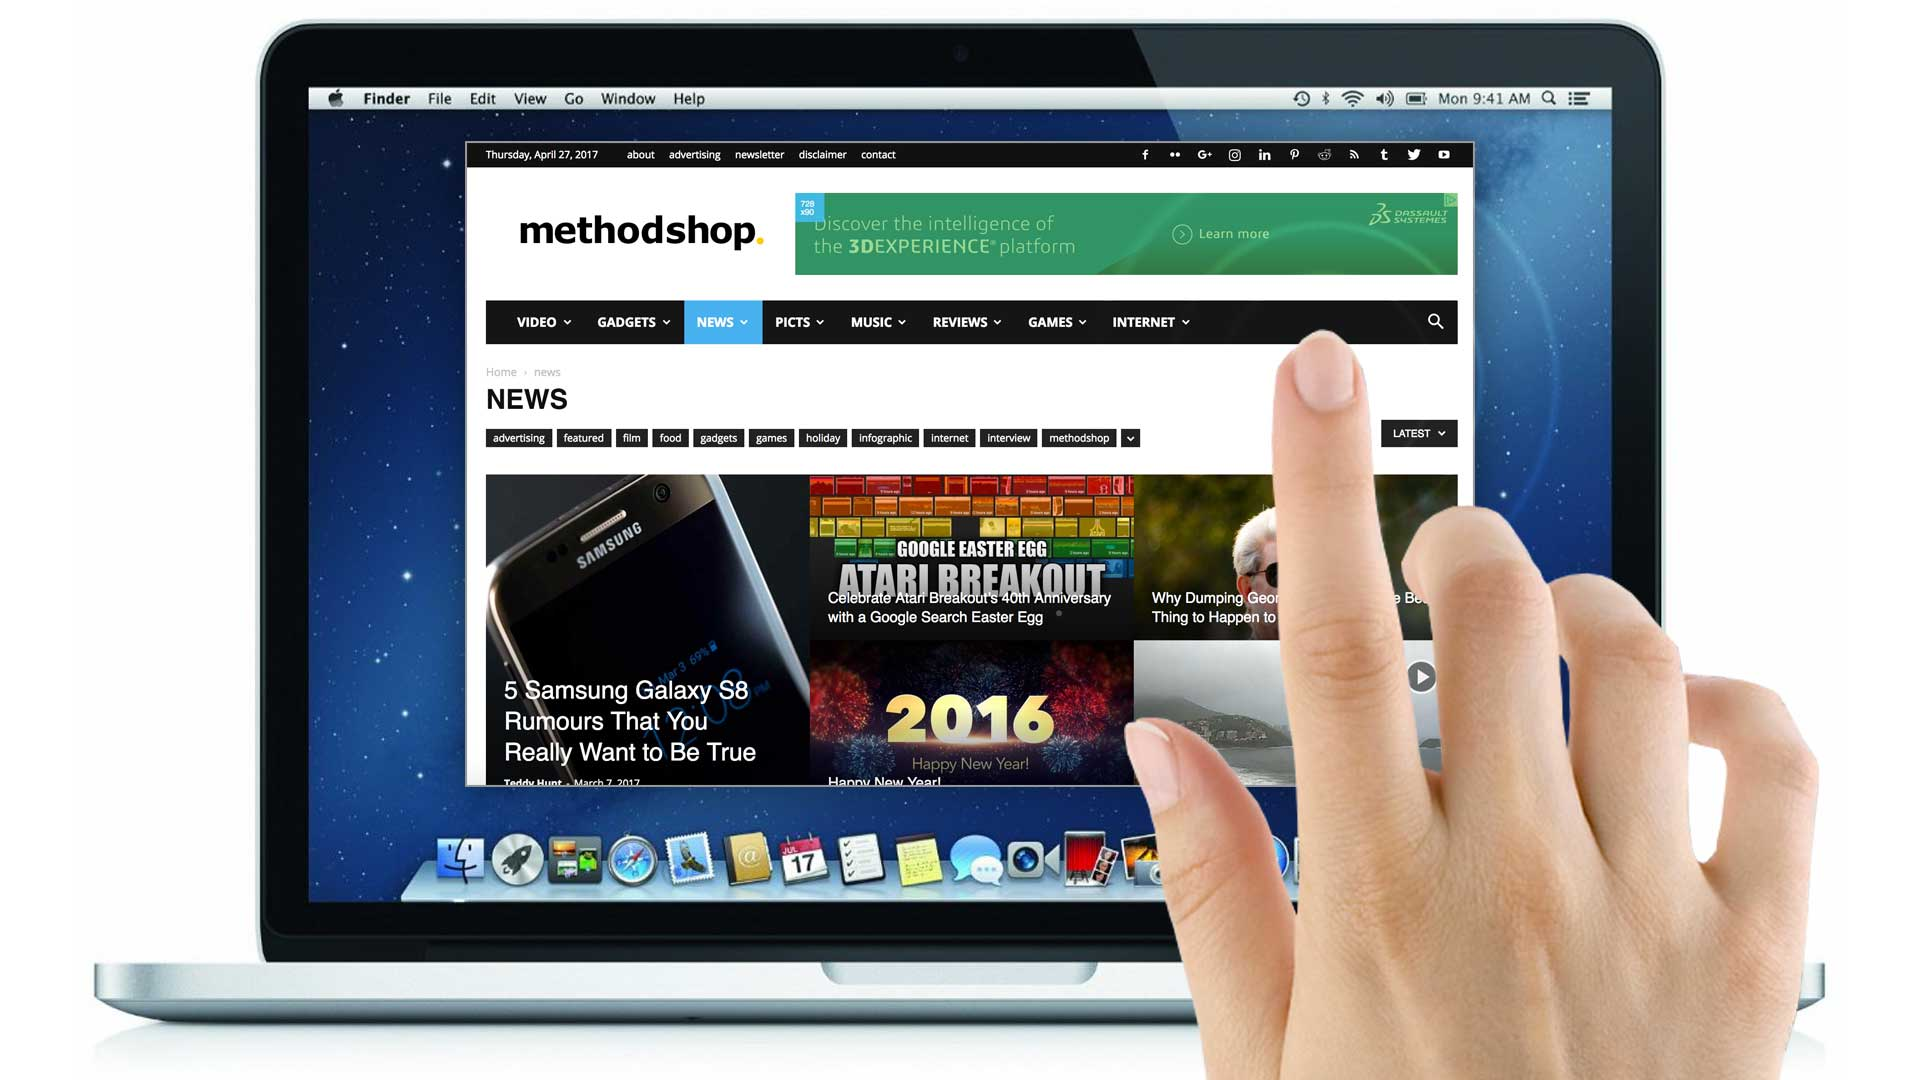 Mockup of a Touch Screen MacBook